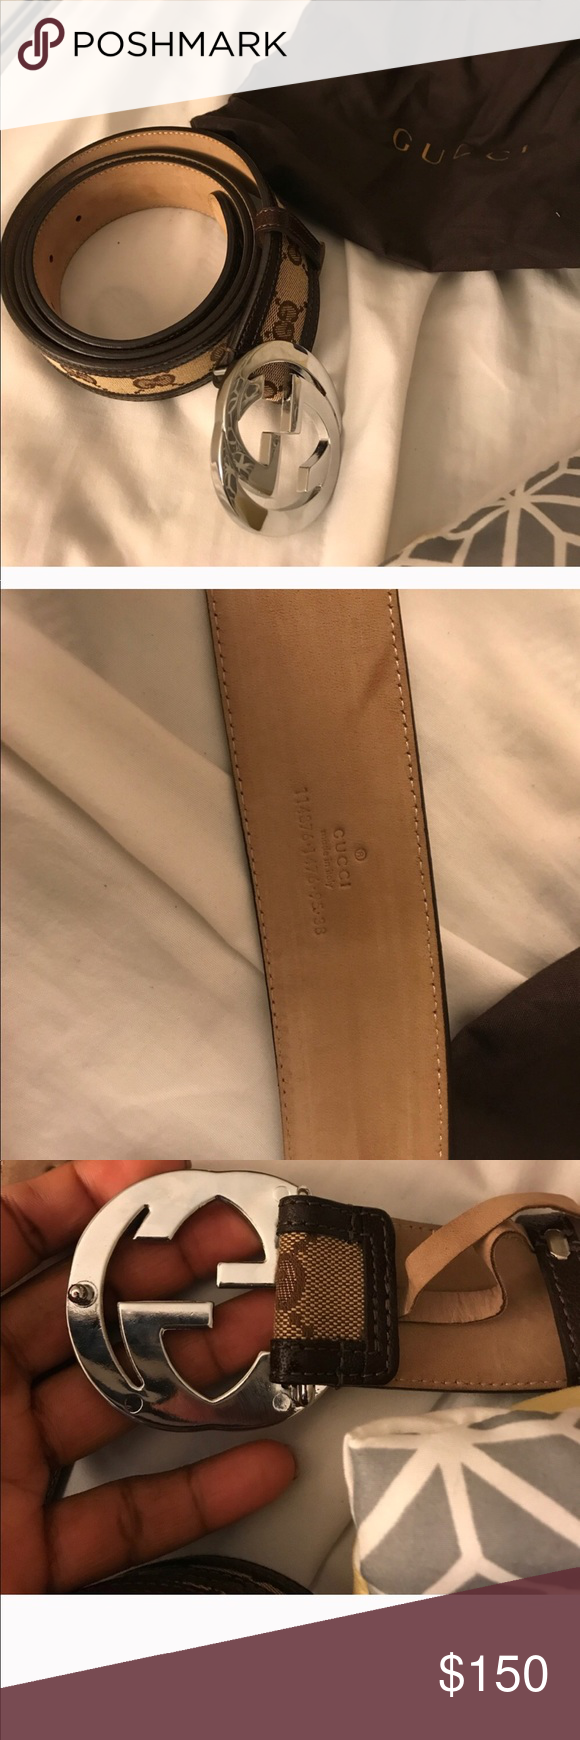 Gucci Belt Serial Number >> Gucci Belt 100 Authentic Gucci Belt Serial Number 114876 1476